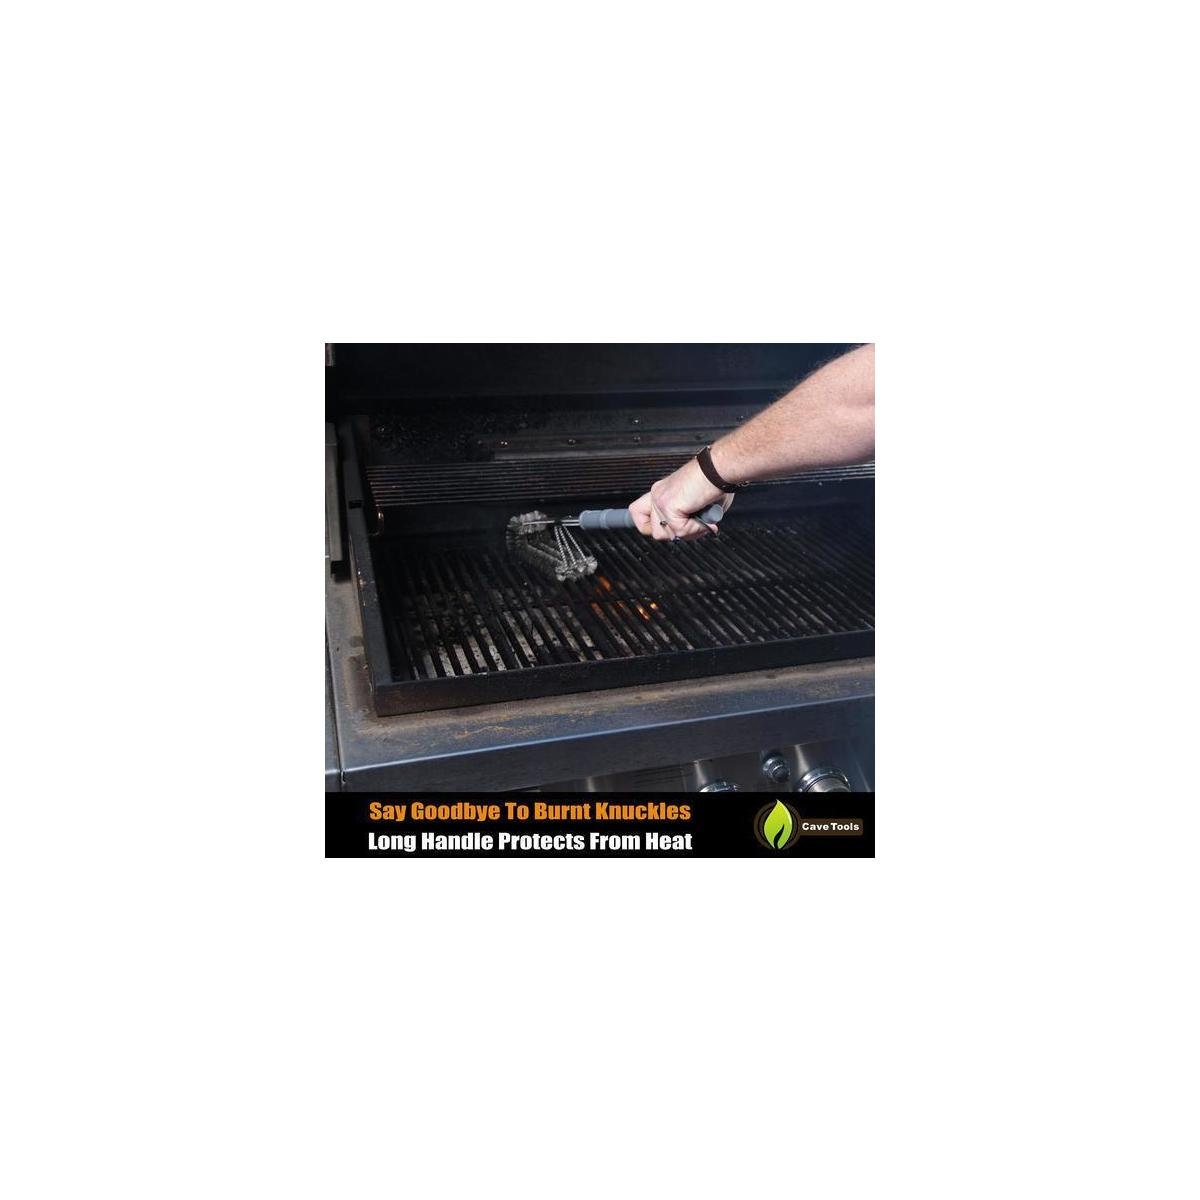 Grill Brush Rust Proof Stainless Steel